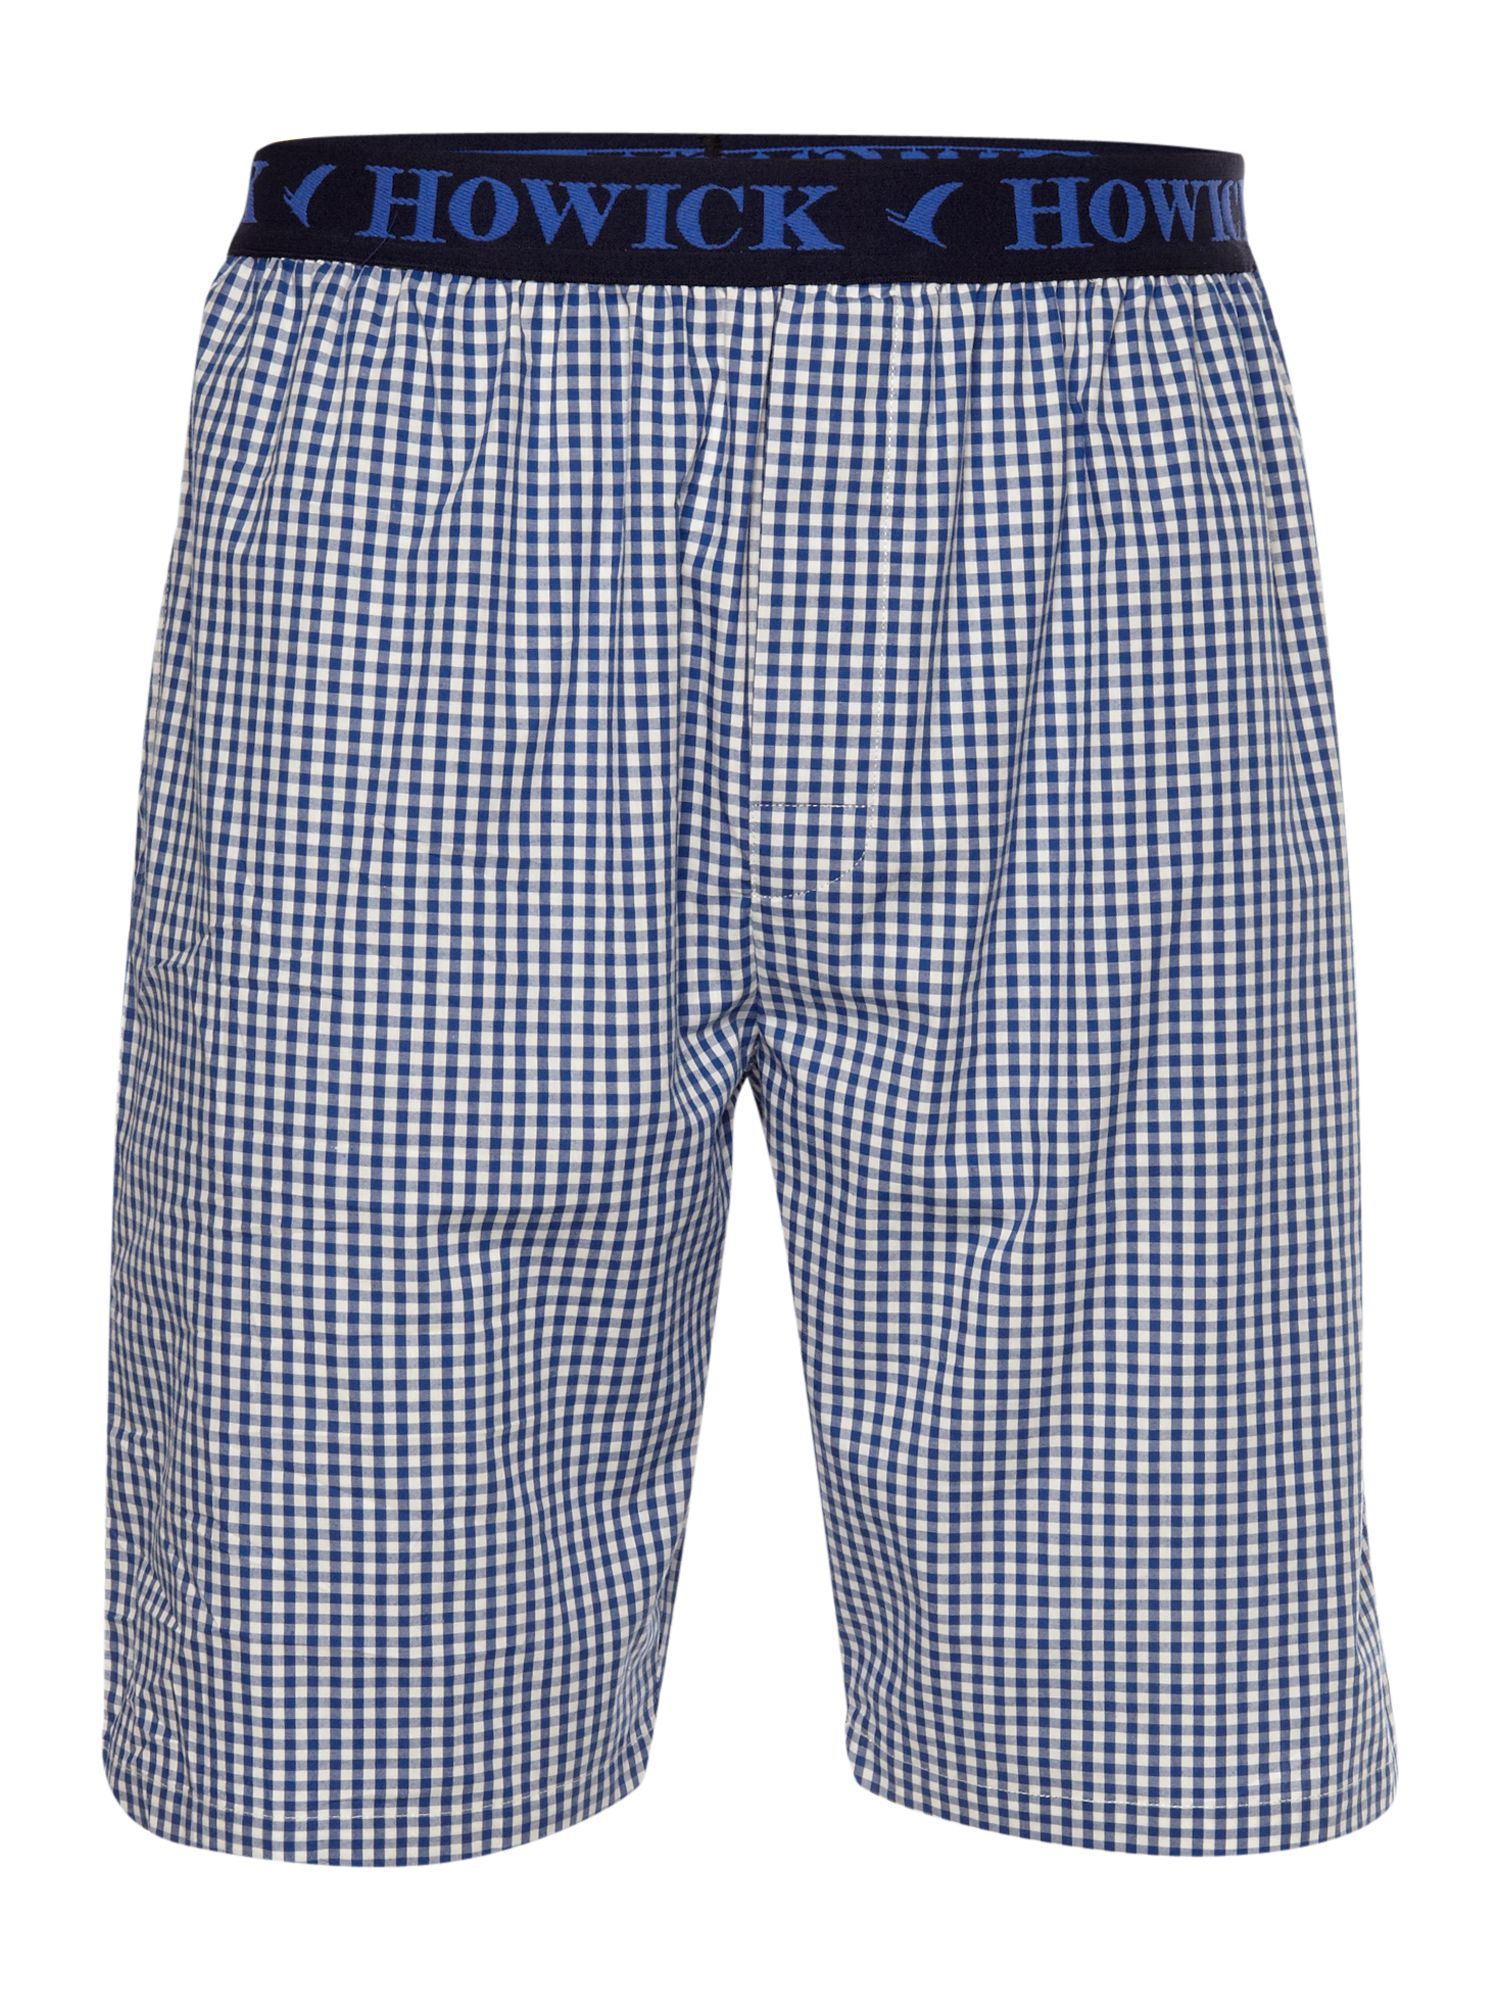 Gingham Checked pj short